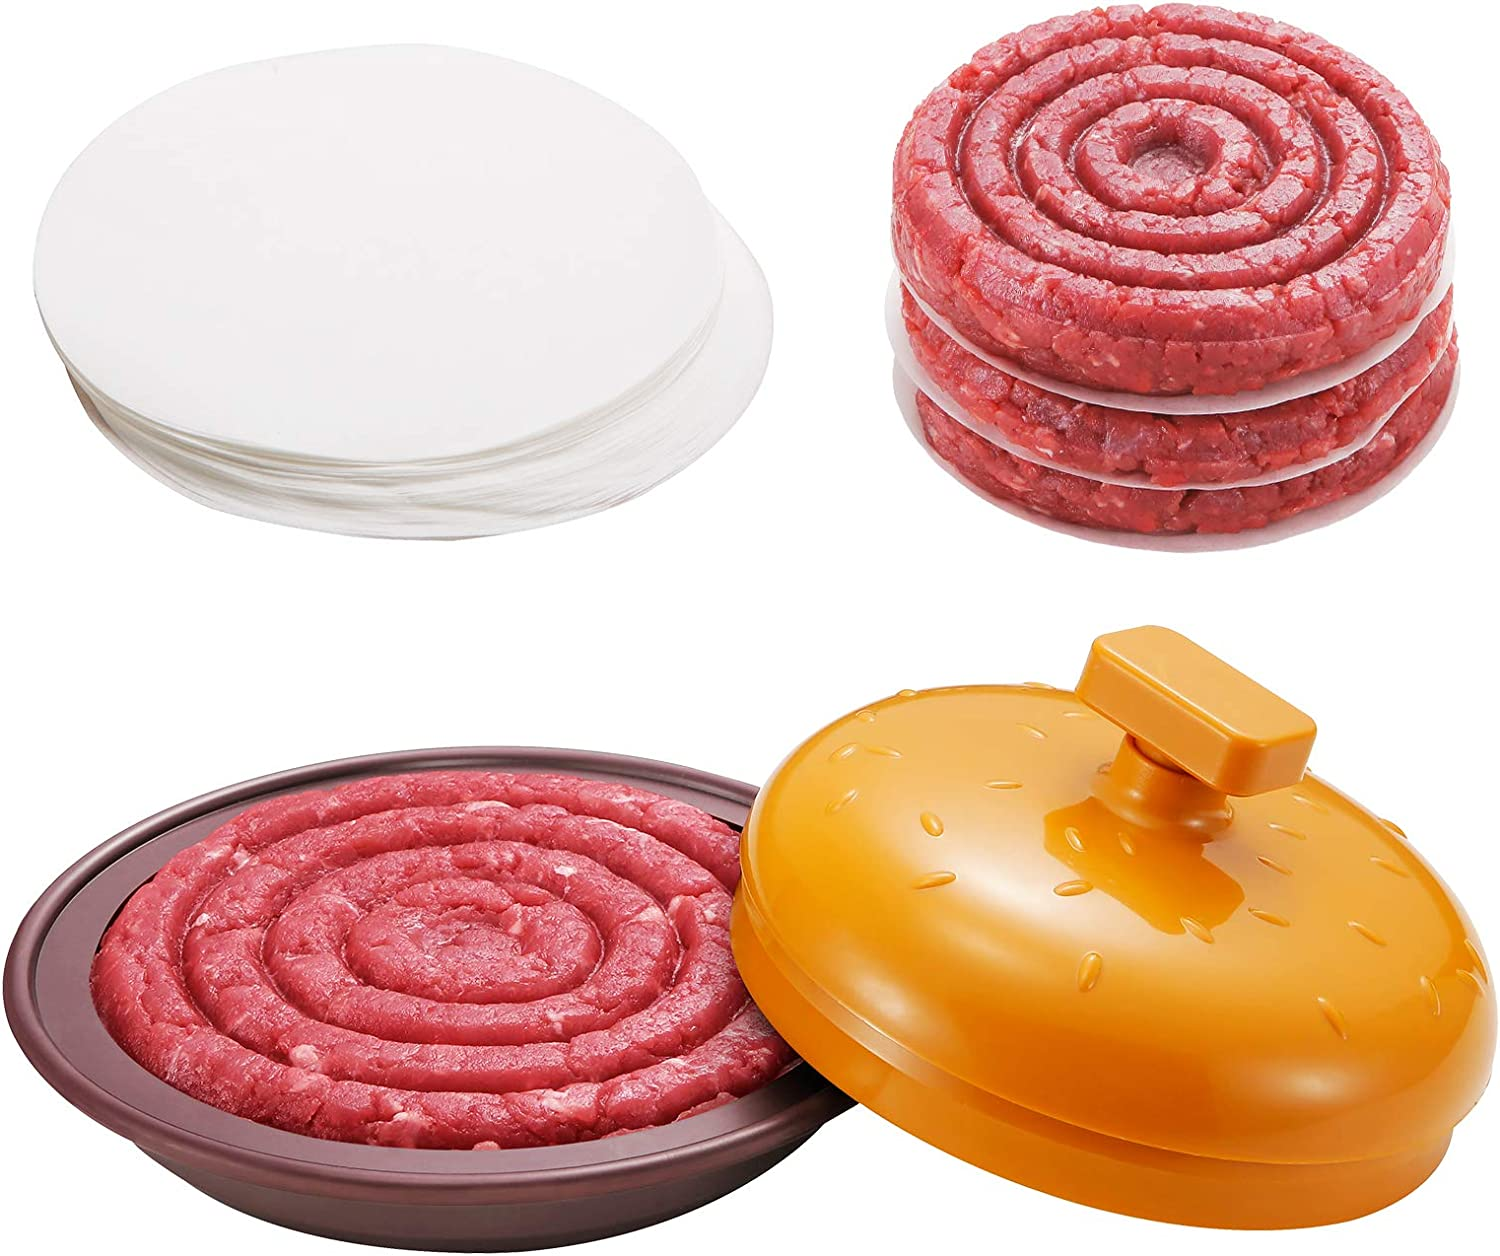 Unicook Burger Press, Non-Stick Hamburger Patty Maker Press with 100 Wax Patty Papers, Making ¼ to ½ Pound Professional Stuffed Burgers Patties, Perfect for Kitchen, BBQ and Grilling